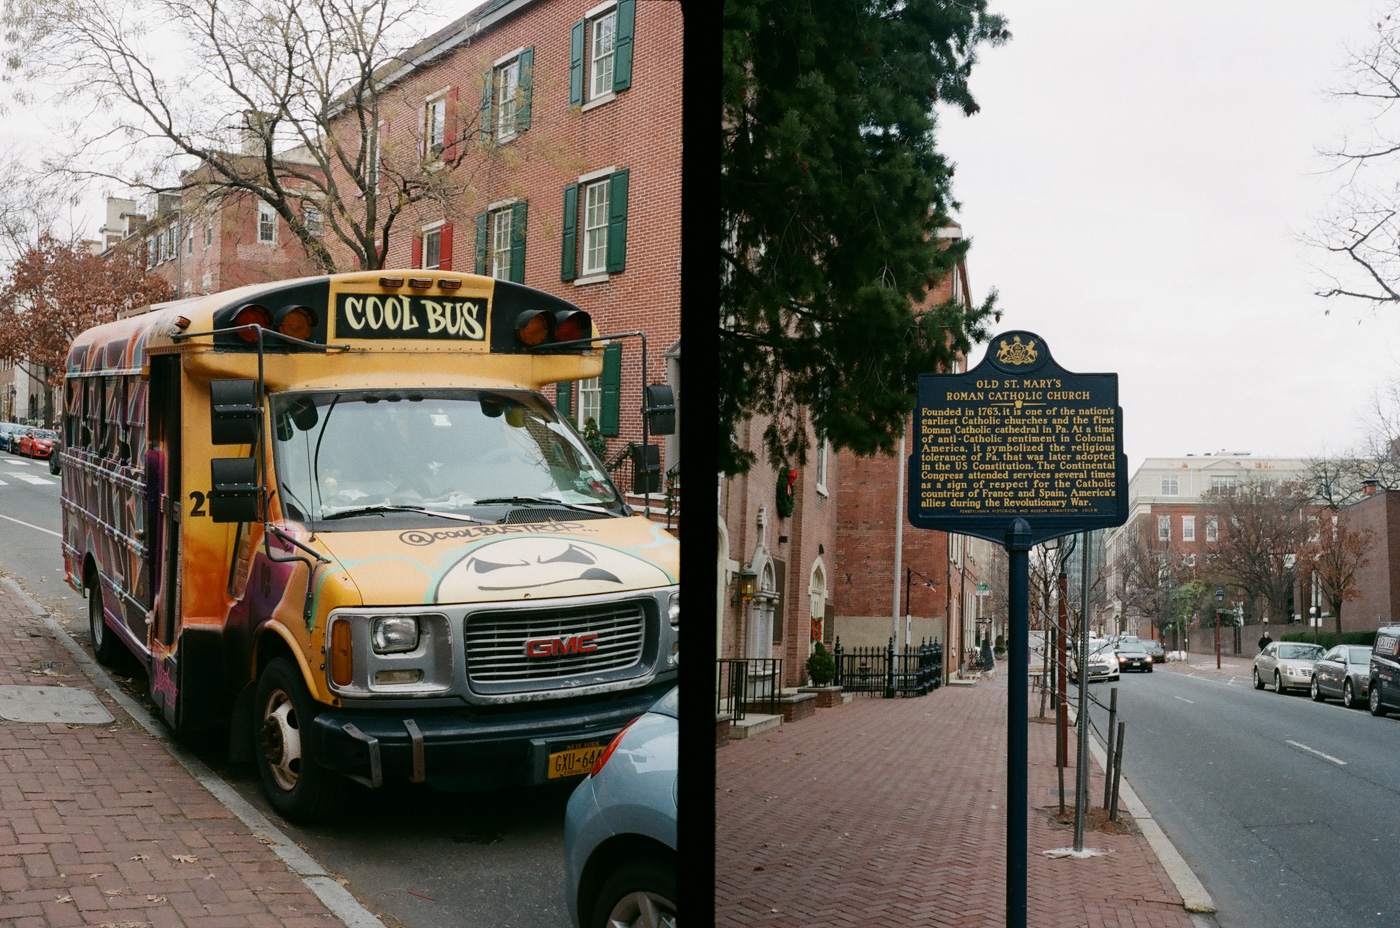 Cool Bus and Old St. Mary's Historical Marker